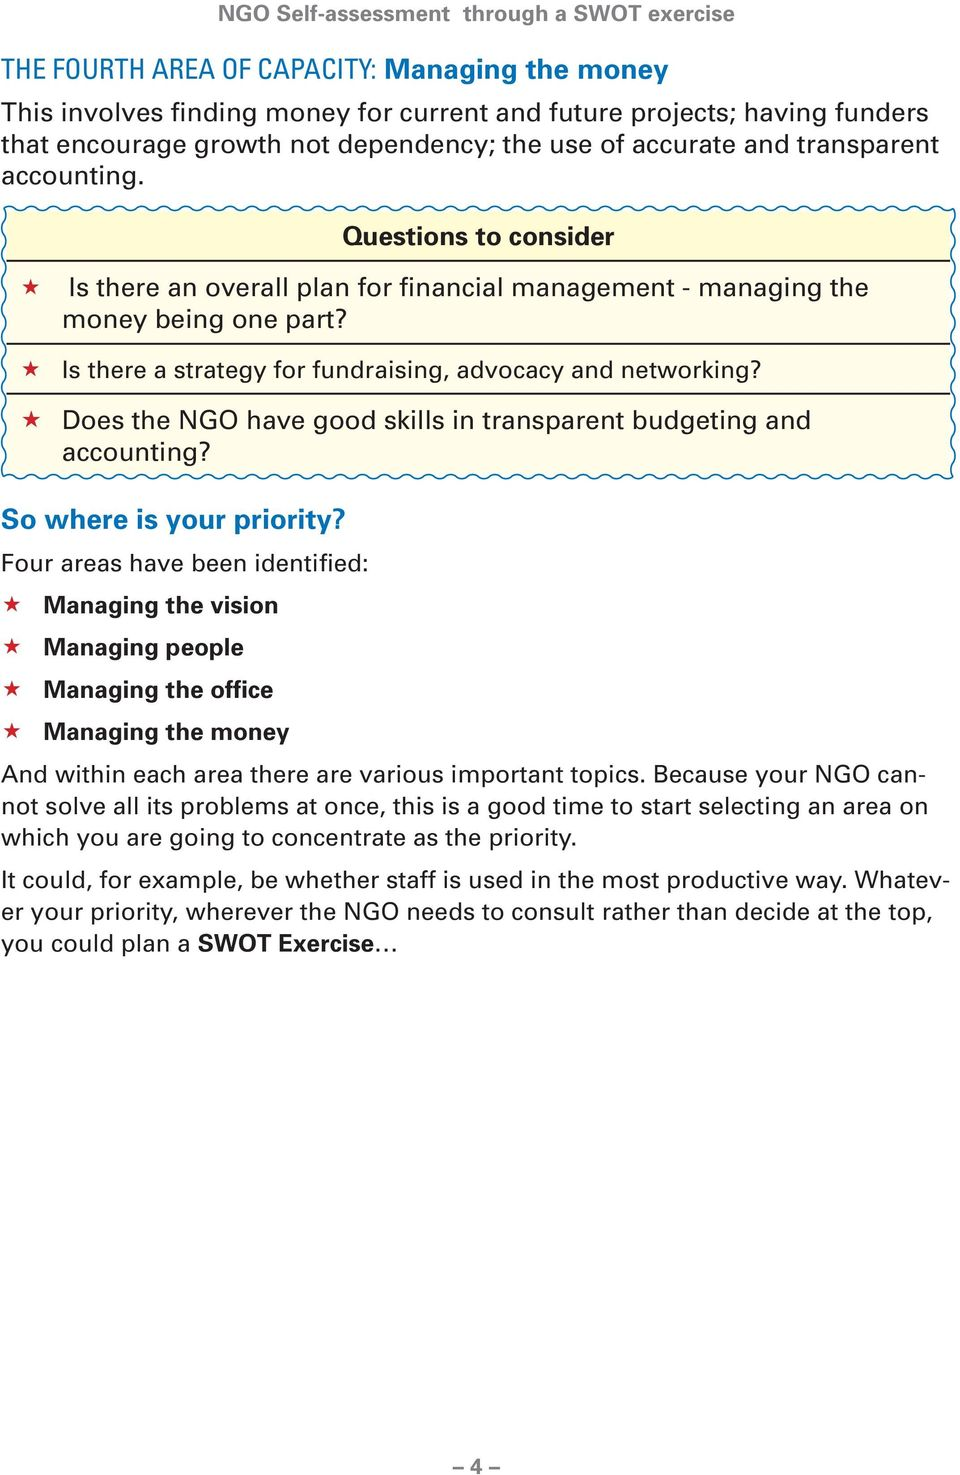 Does the NGO have good skills in transparent budgeting and accounting? So where is your priority?